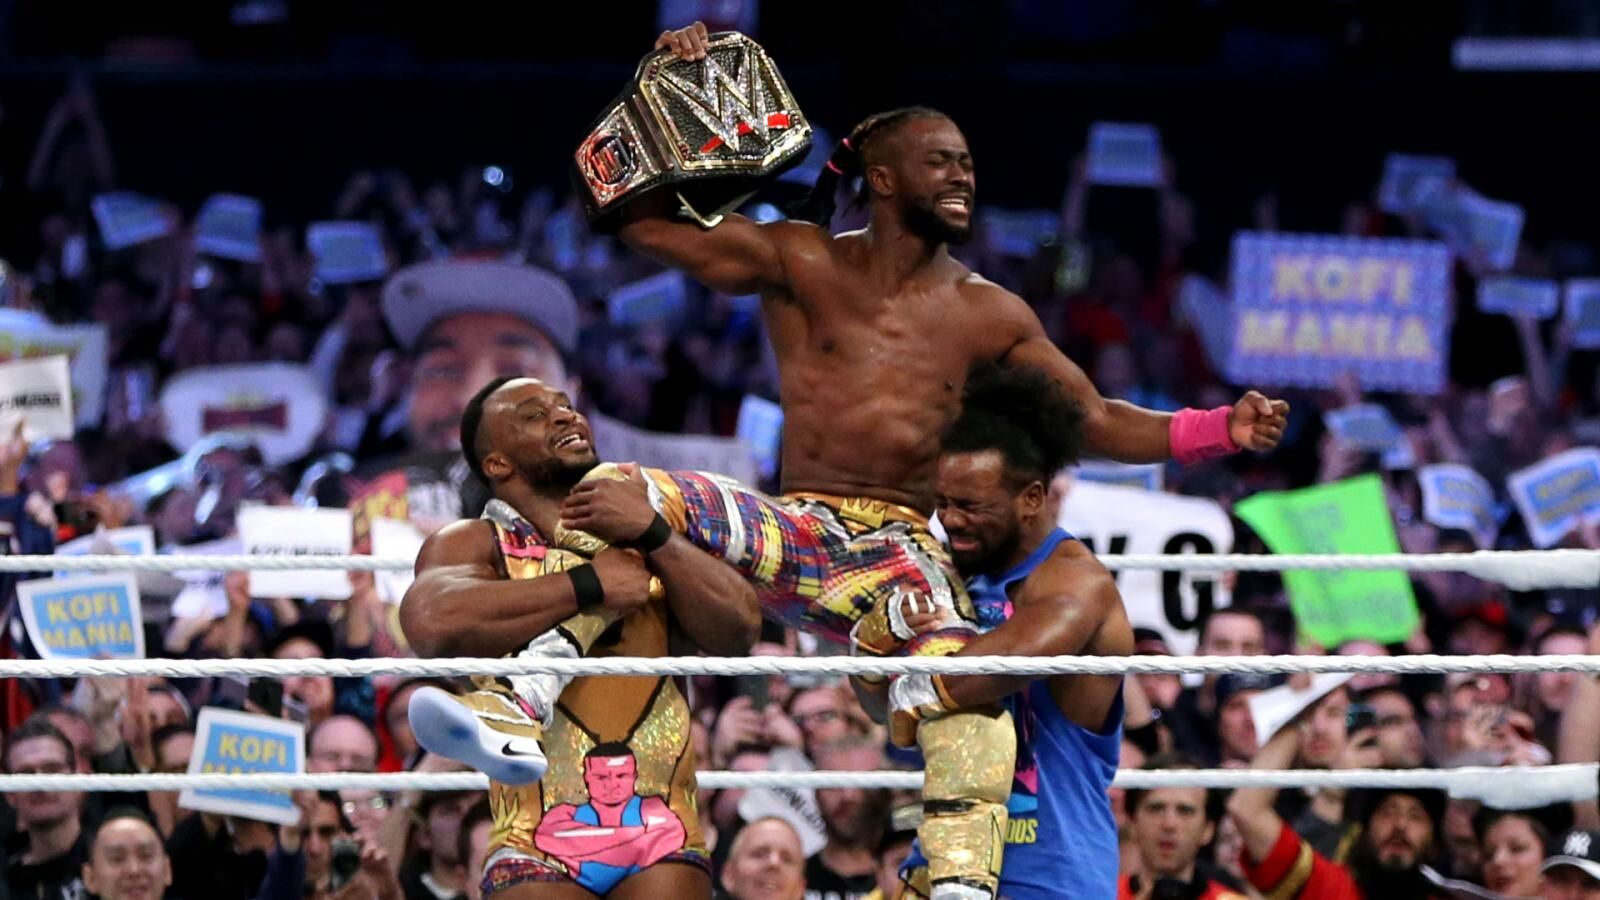 Kofi Kingston's post-title treatment shows WWE missed the point